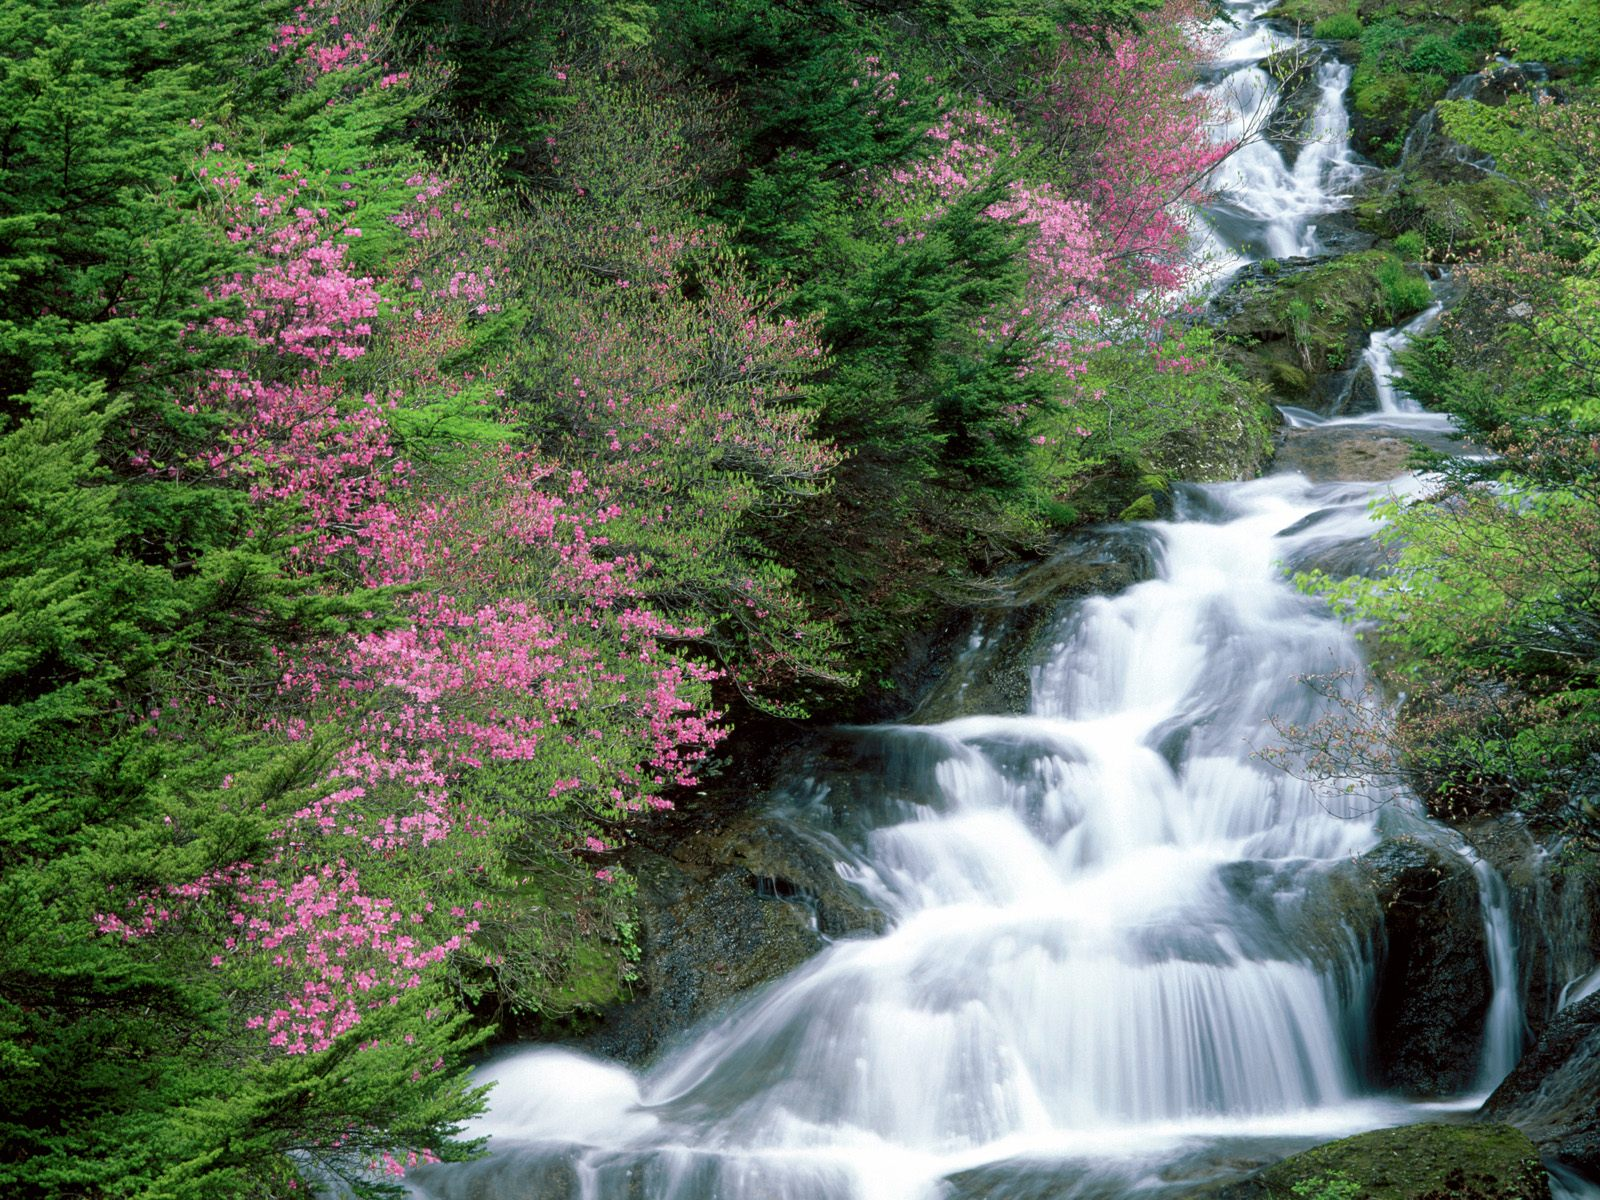 Hq Desktop Wallpapers Beauty Of Water Fall Pics